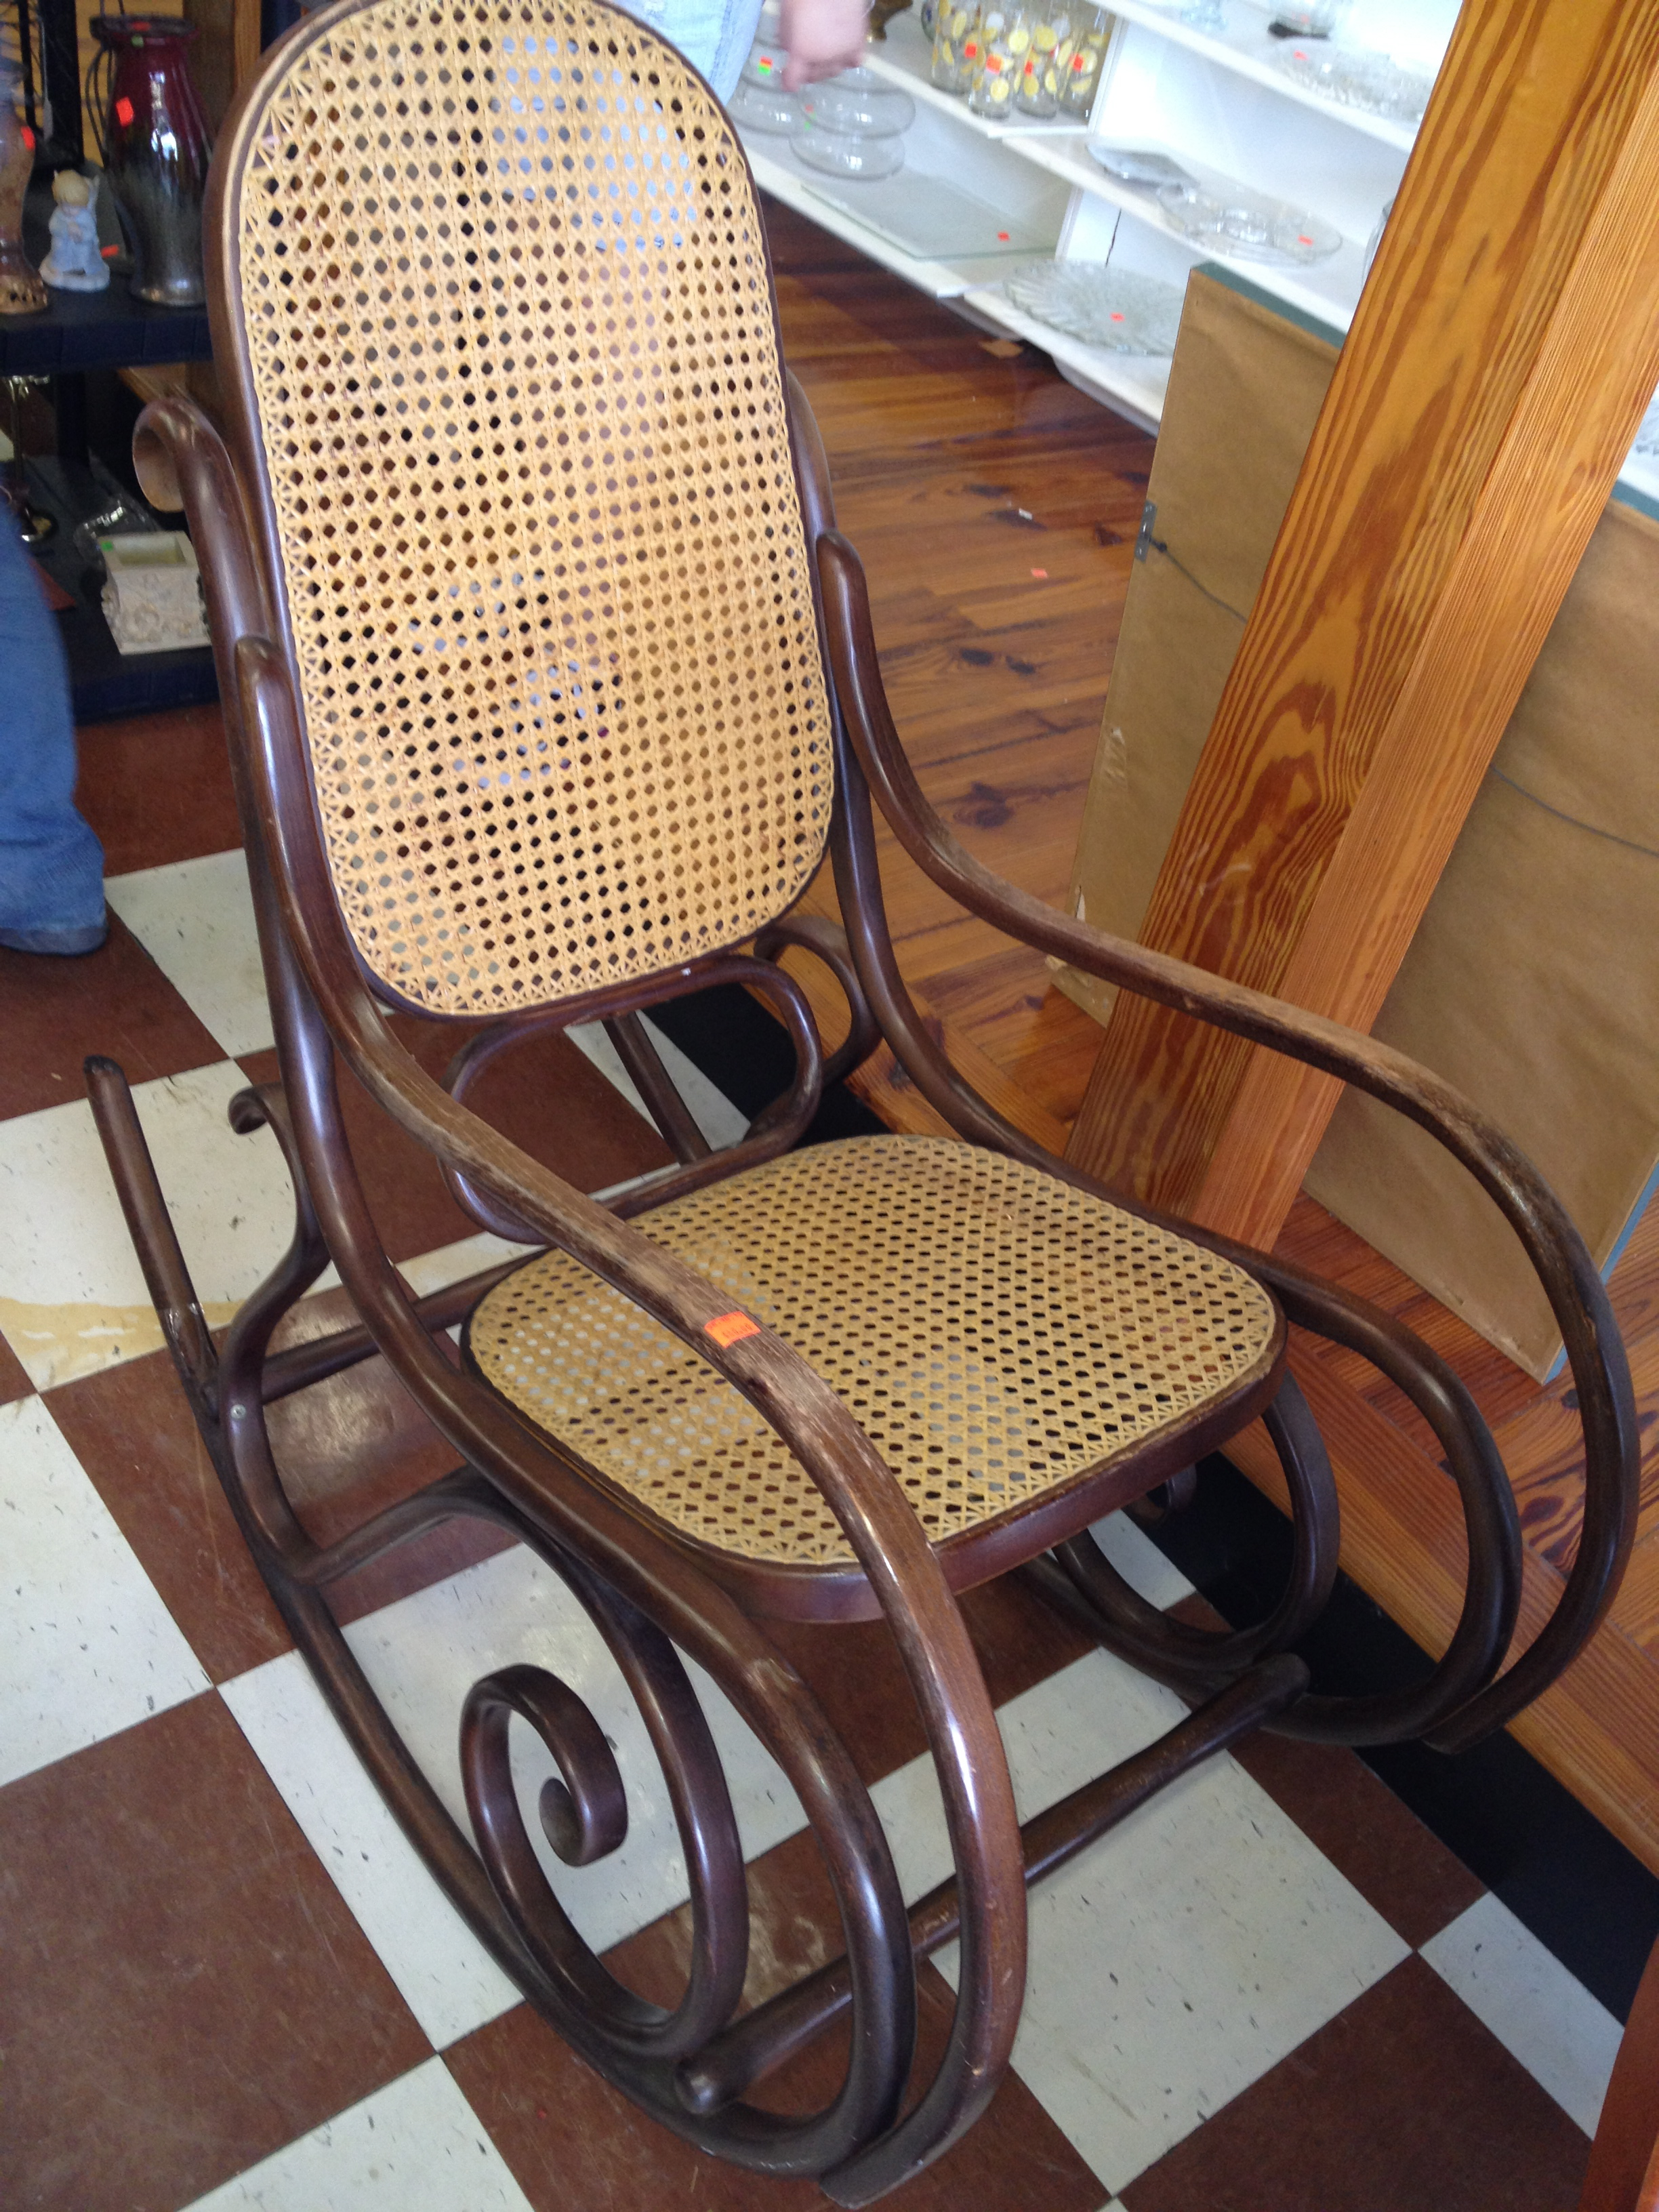 Cane Rocker - ReTail Thrift Store - Charleston, SC